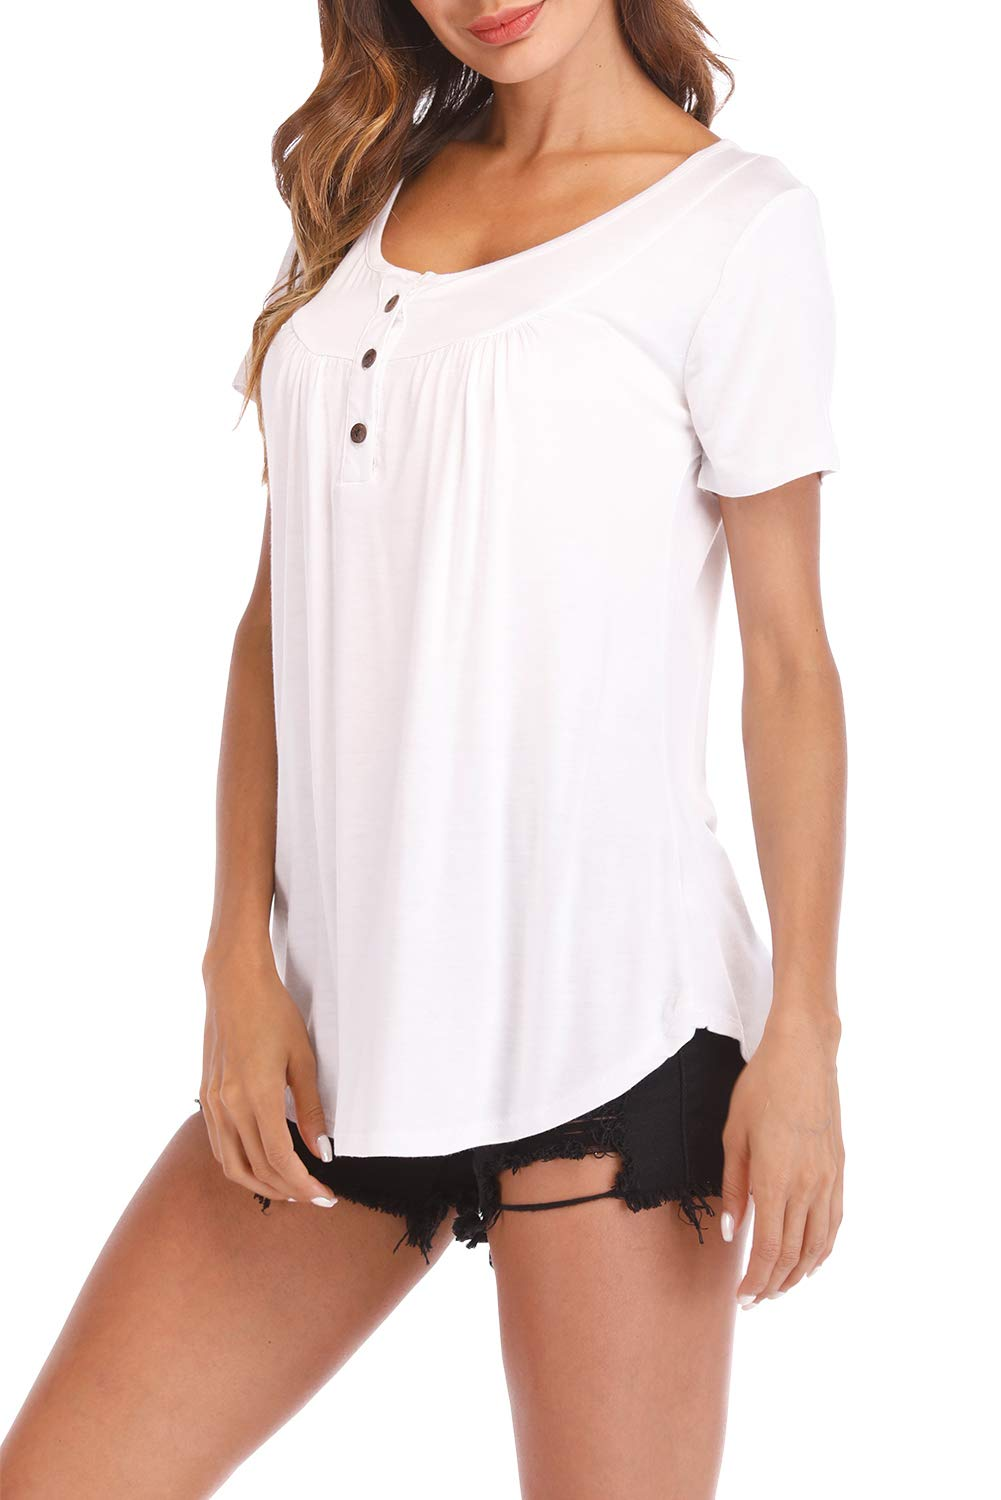 Fantastic Zone Womens Tops and Blouses Short Sleeve Tunics Plus Size Summer Shirts White XXL by Fantastic Zone (Image #4)